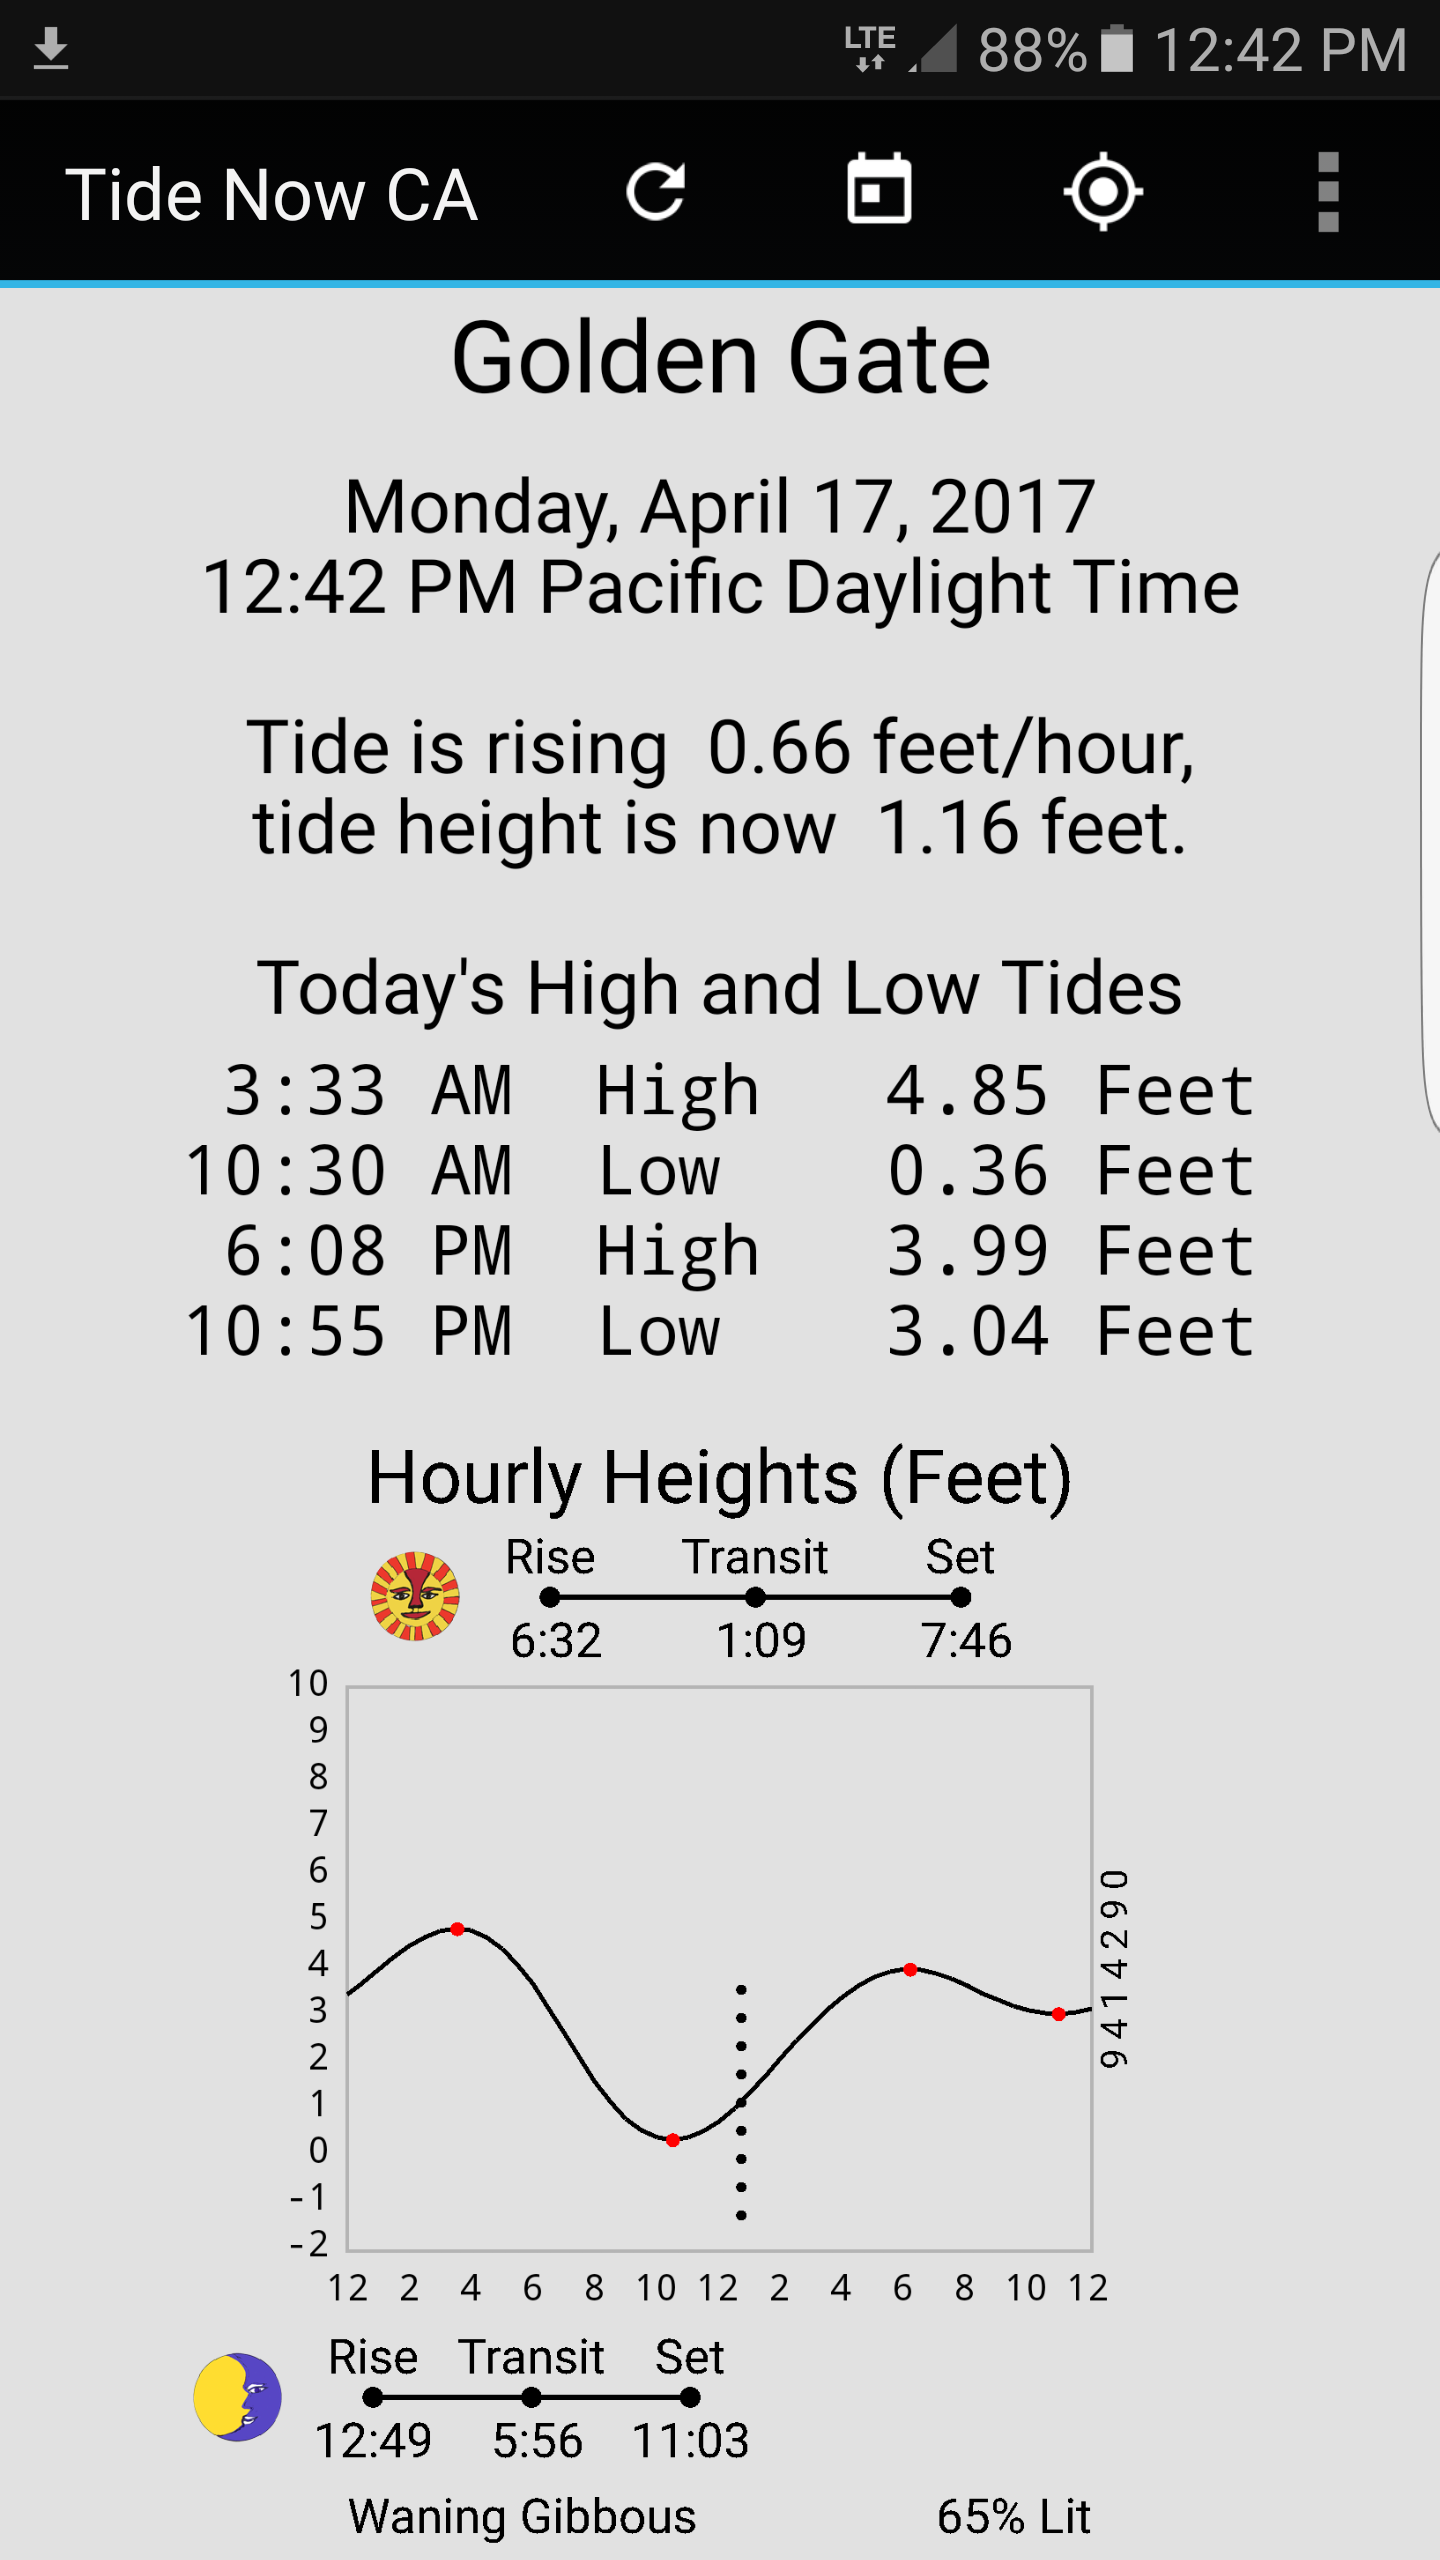 Tide now android app android tide calculator apps tide now nvjuhfo Images